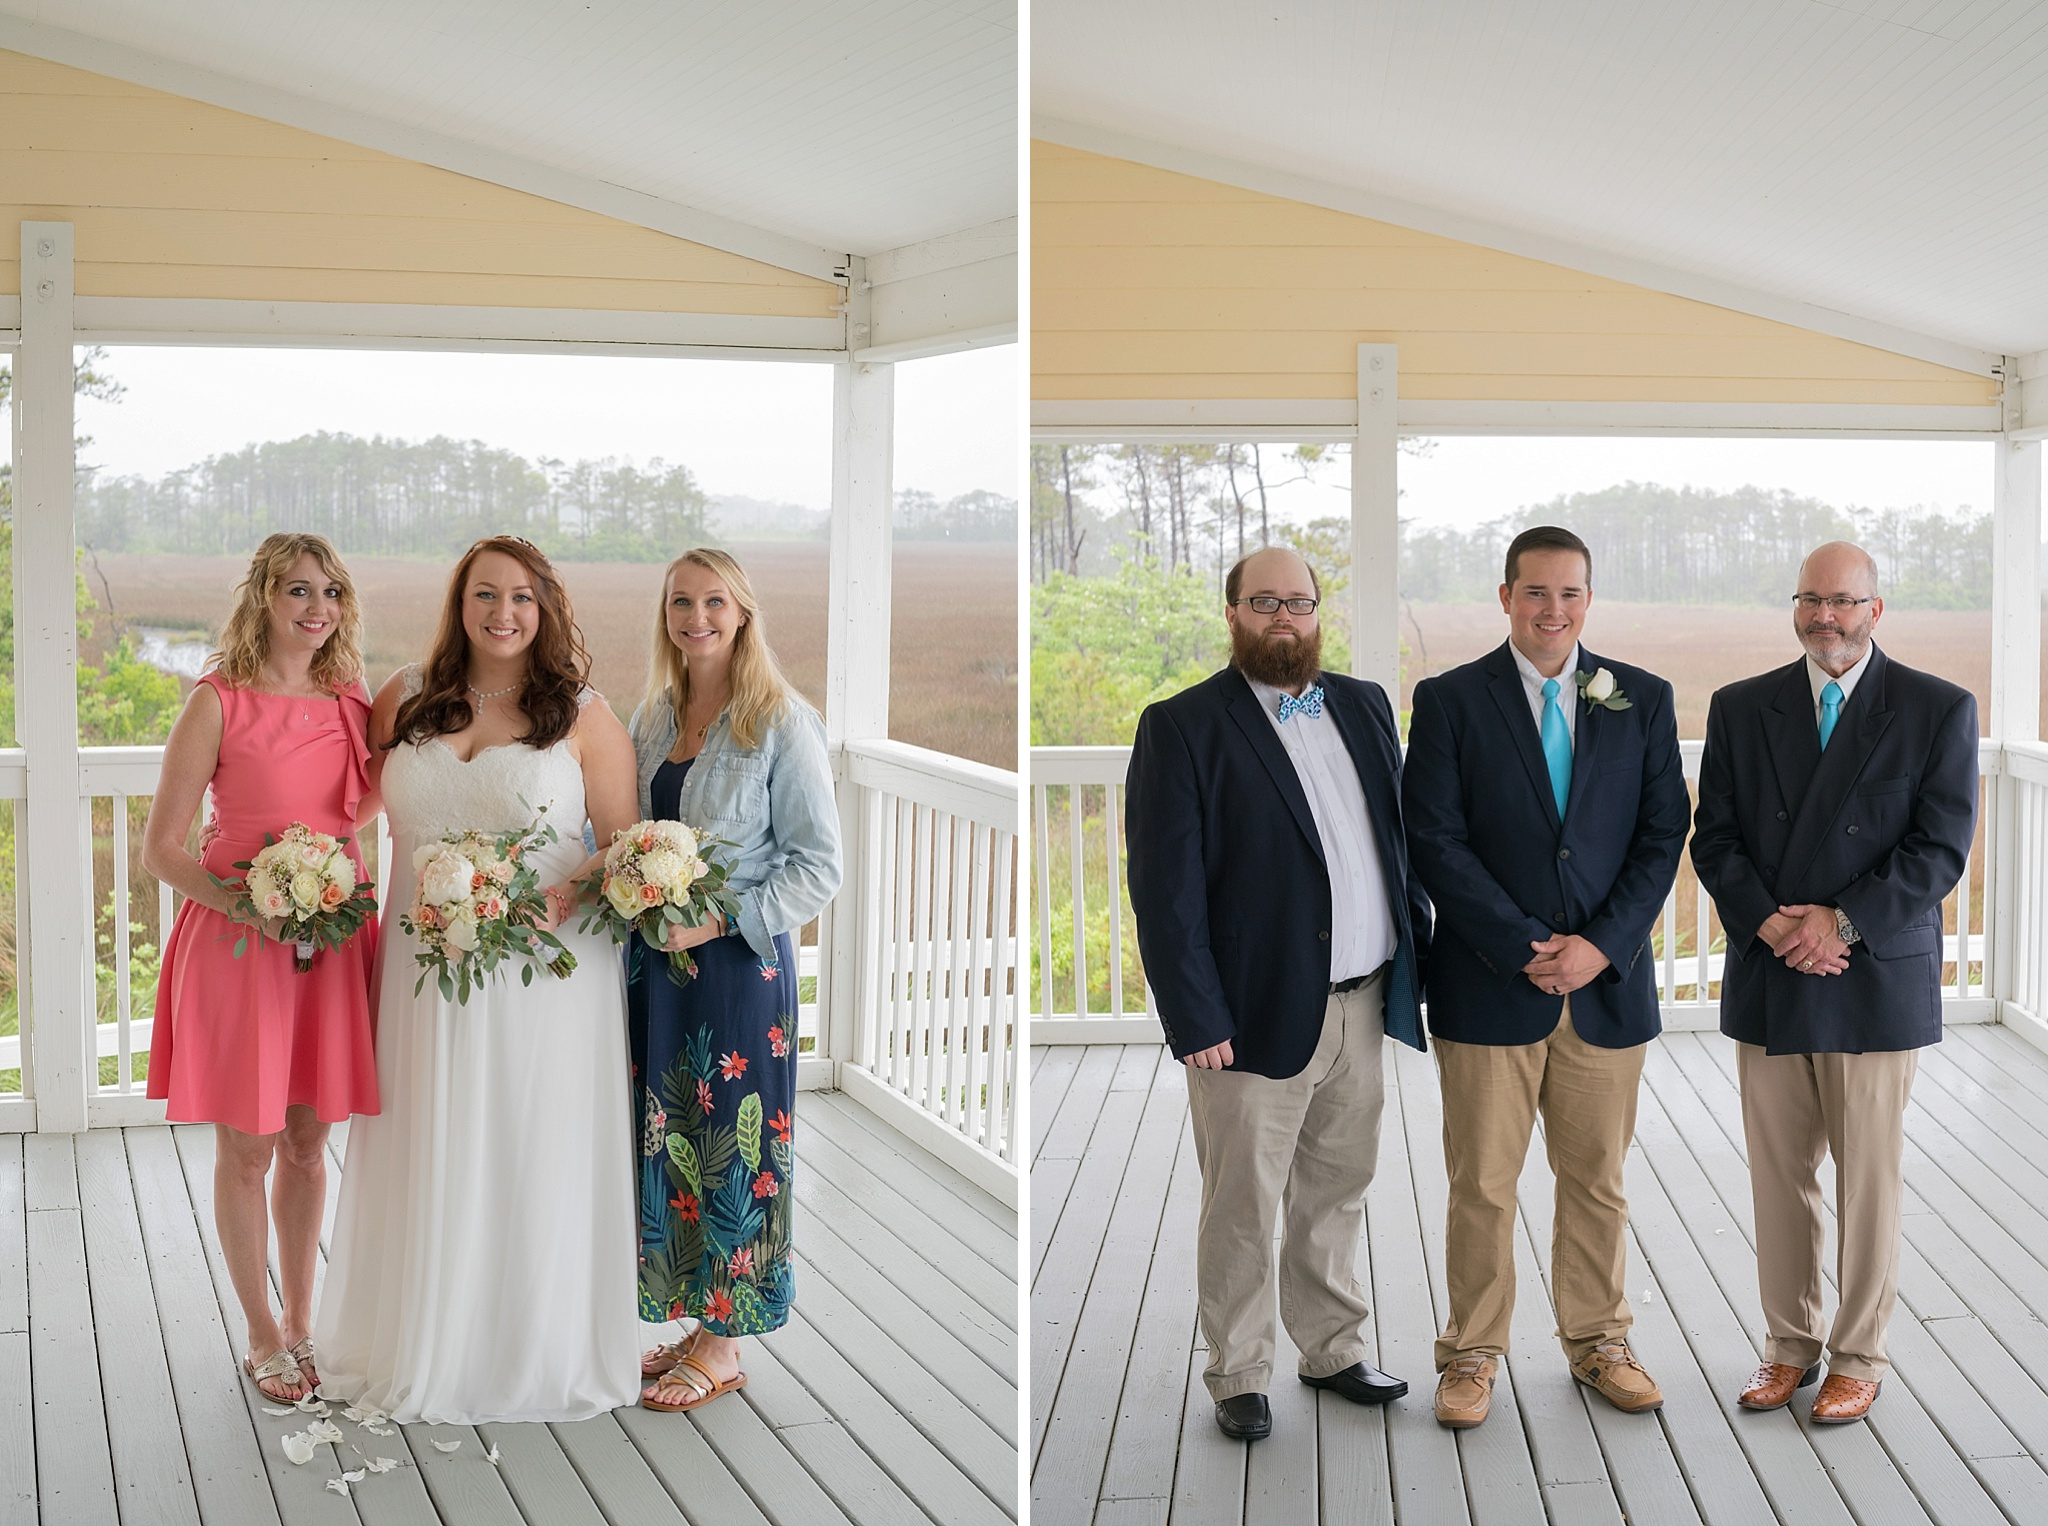 Manteo-NC-Wedding-Photographer-122.jpg